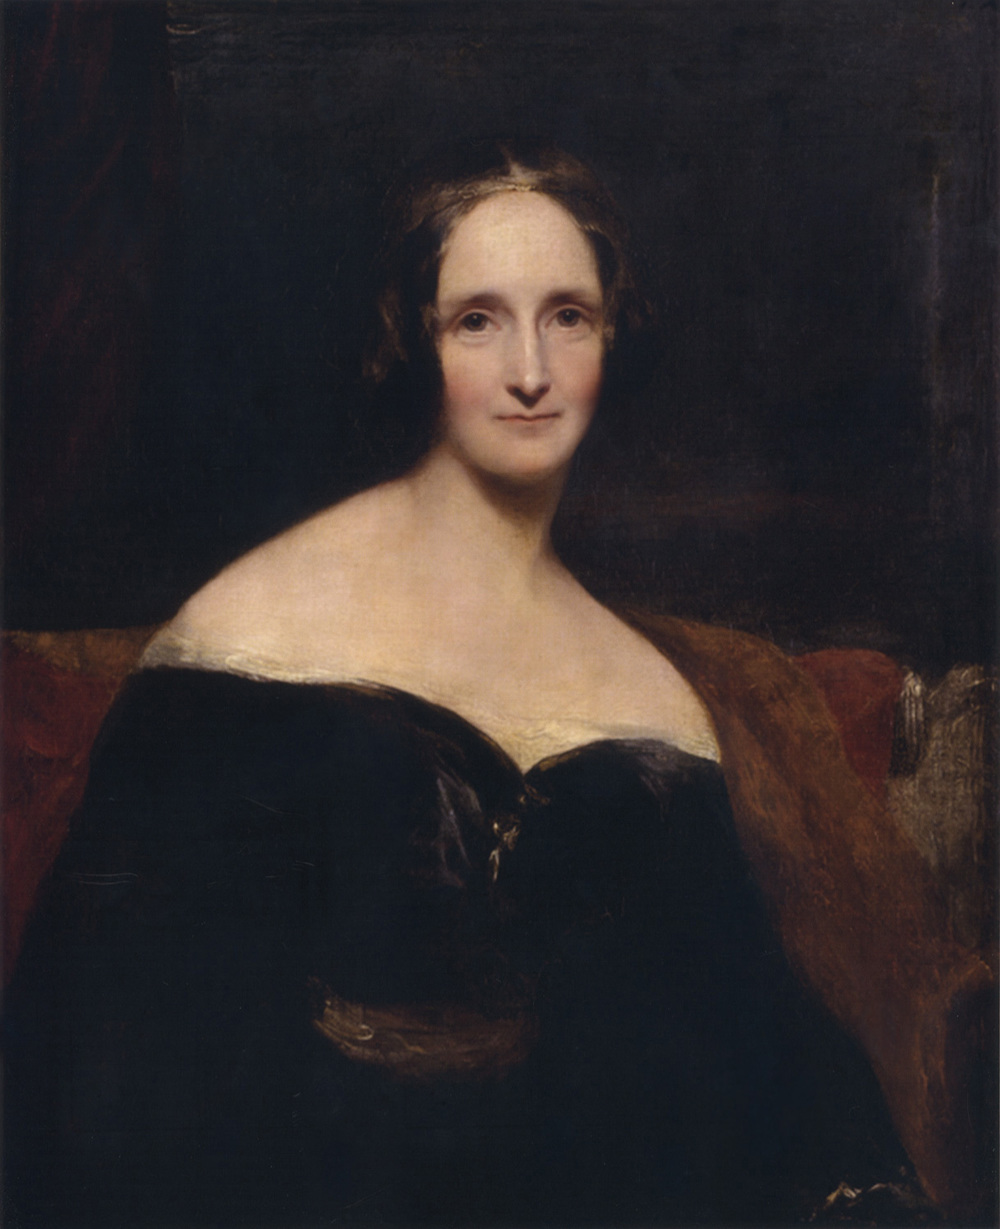 """Beware; I am fearless, and therefore powerful"" - Mary Shelley"